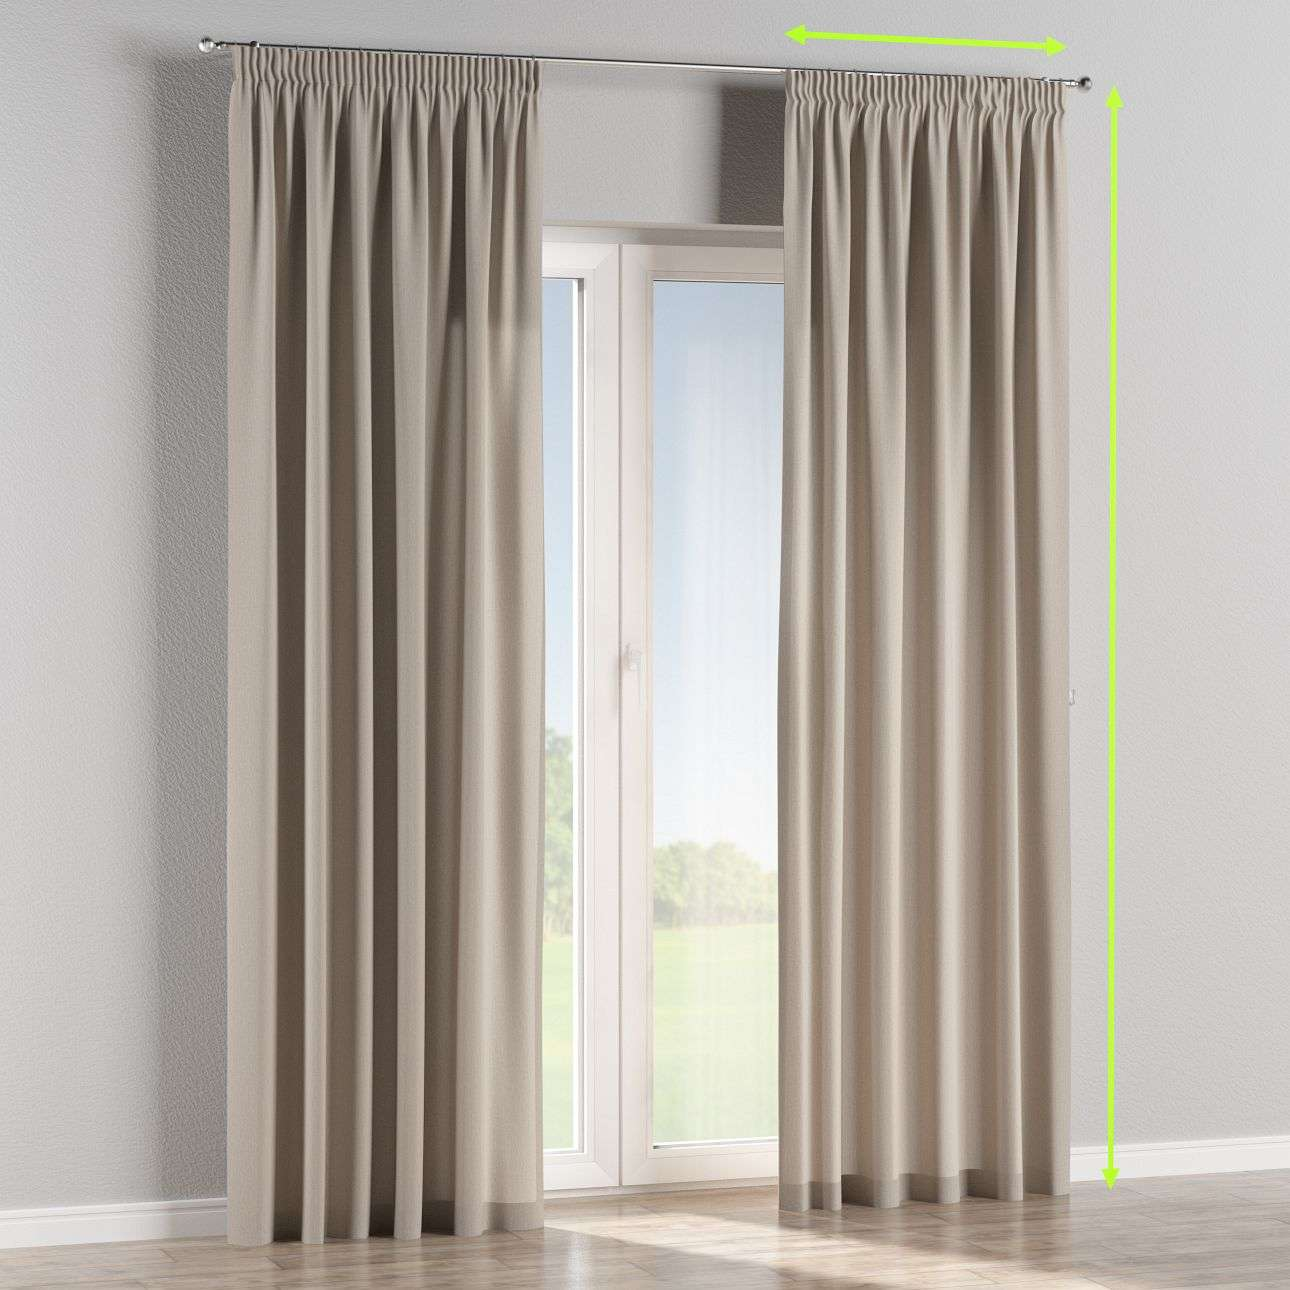 Pencil pleat lined curtains in collection Chenille, fabric: 702-23